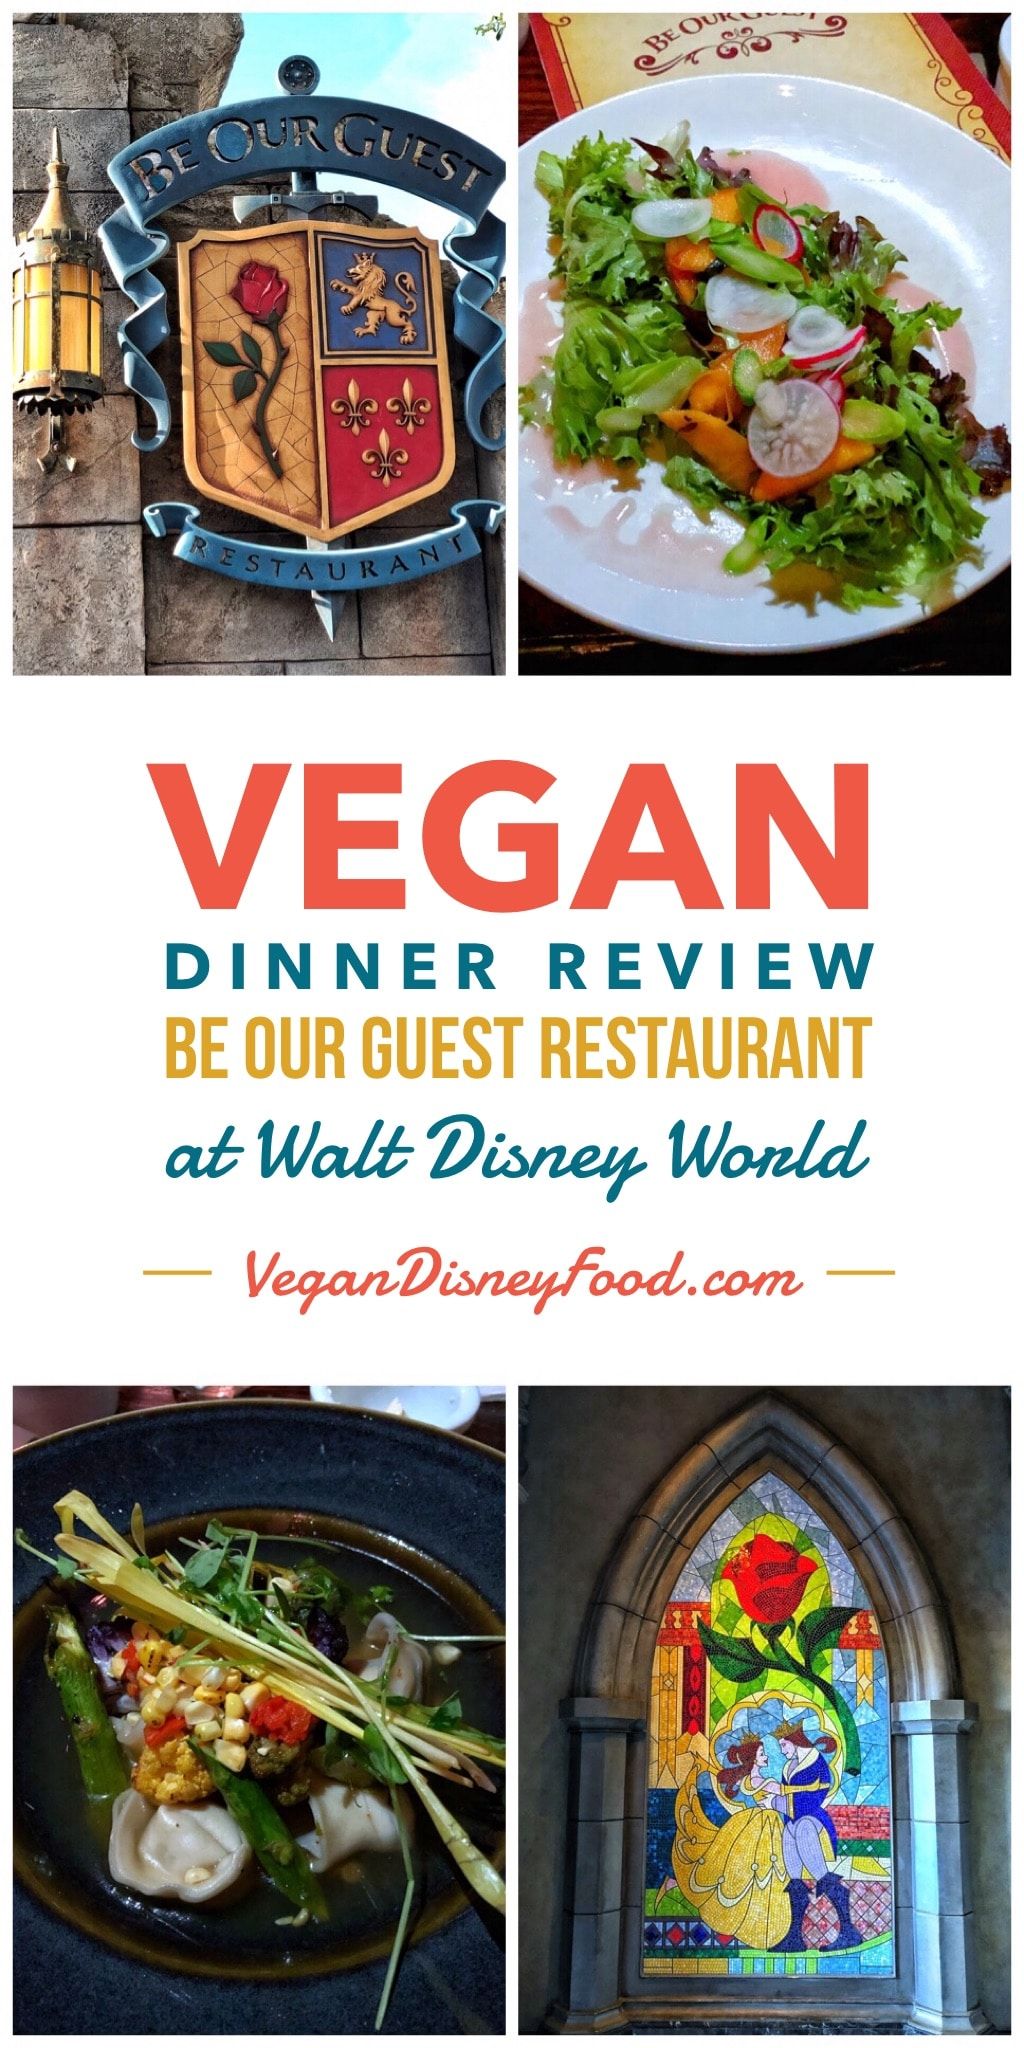 Vegan Dinner Review of Be Our Guest Restaurant in the Magic Kingdom at Walt Disney World